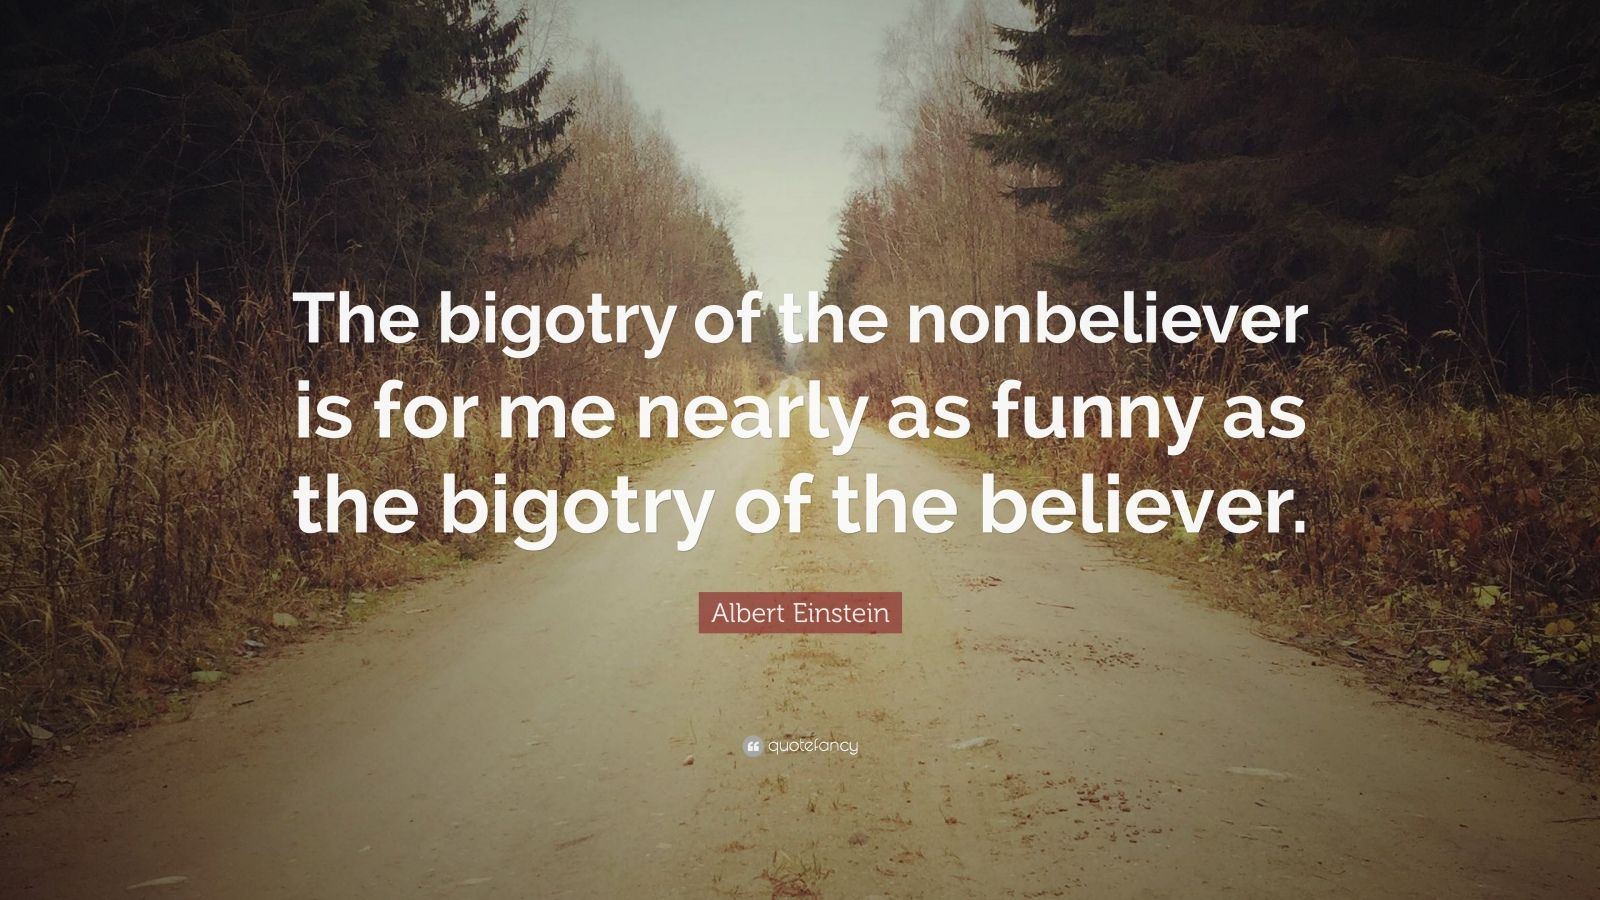 """Albert Einstein Quote: """"The bigotry of the nonbeliever is for me nearly as funny as the bigotry of the believer."""""""